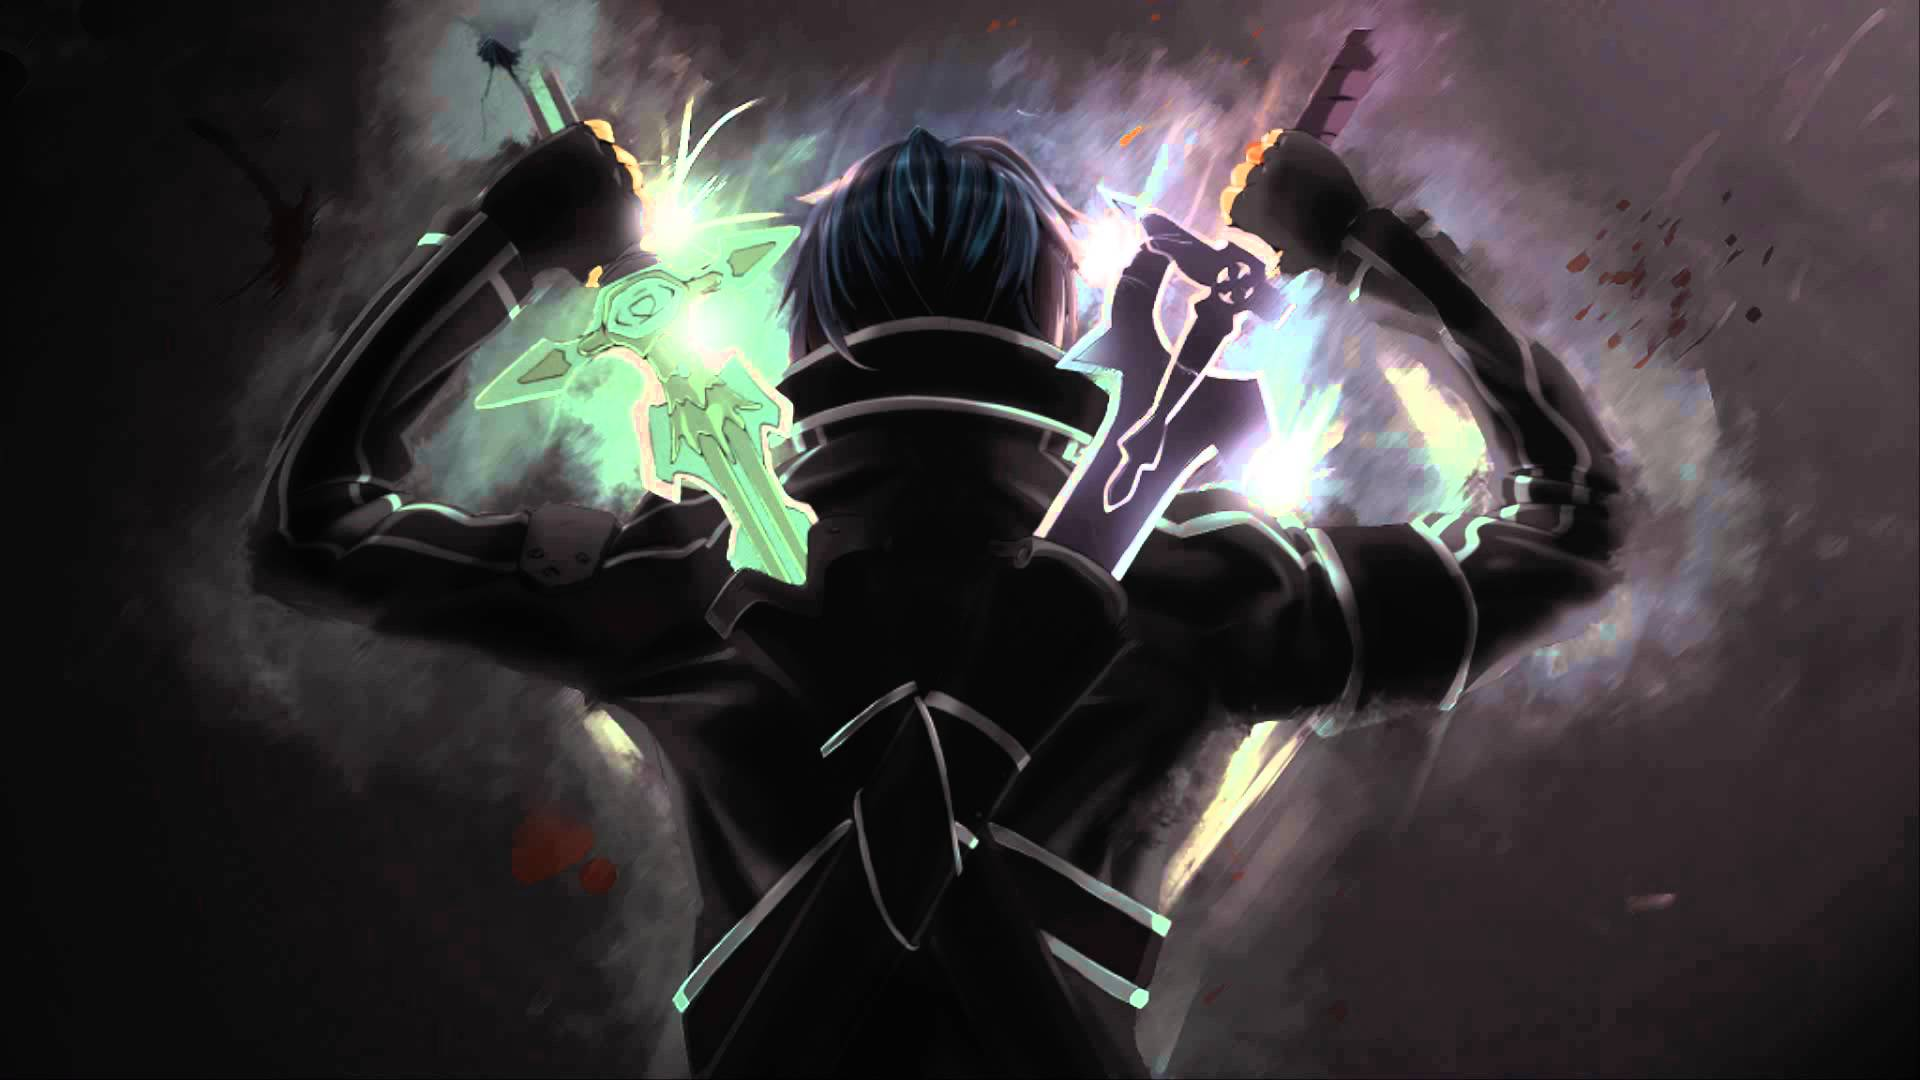 Free Download Luminous Sword Sword Art Online Music Extended